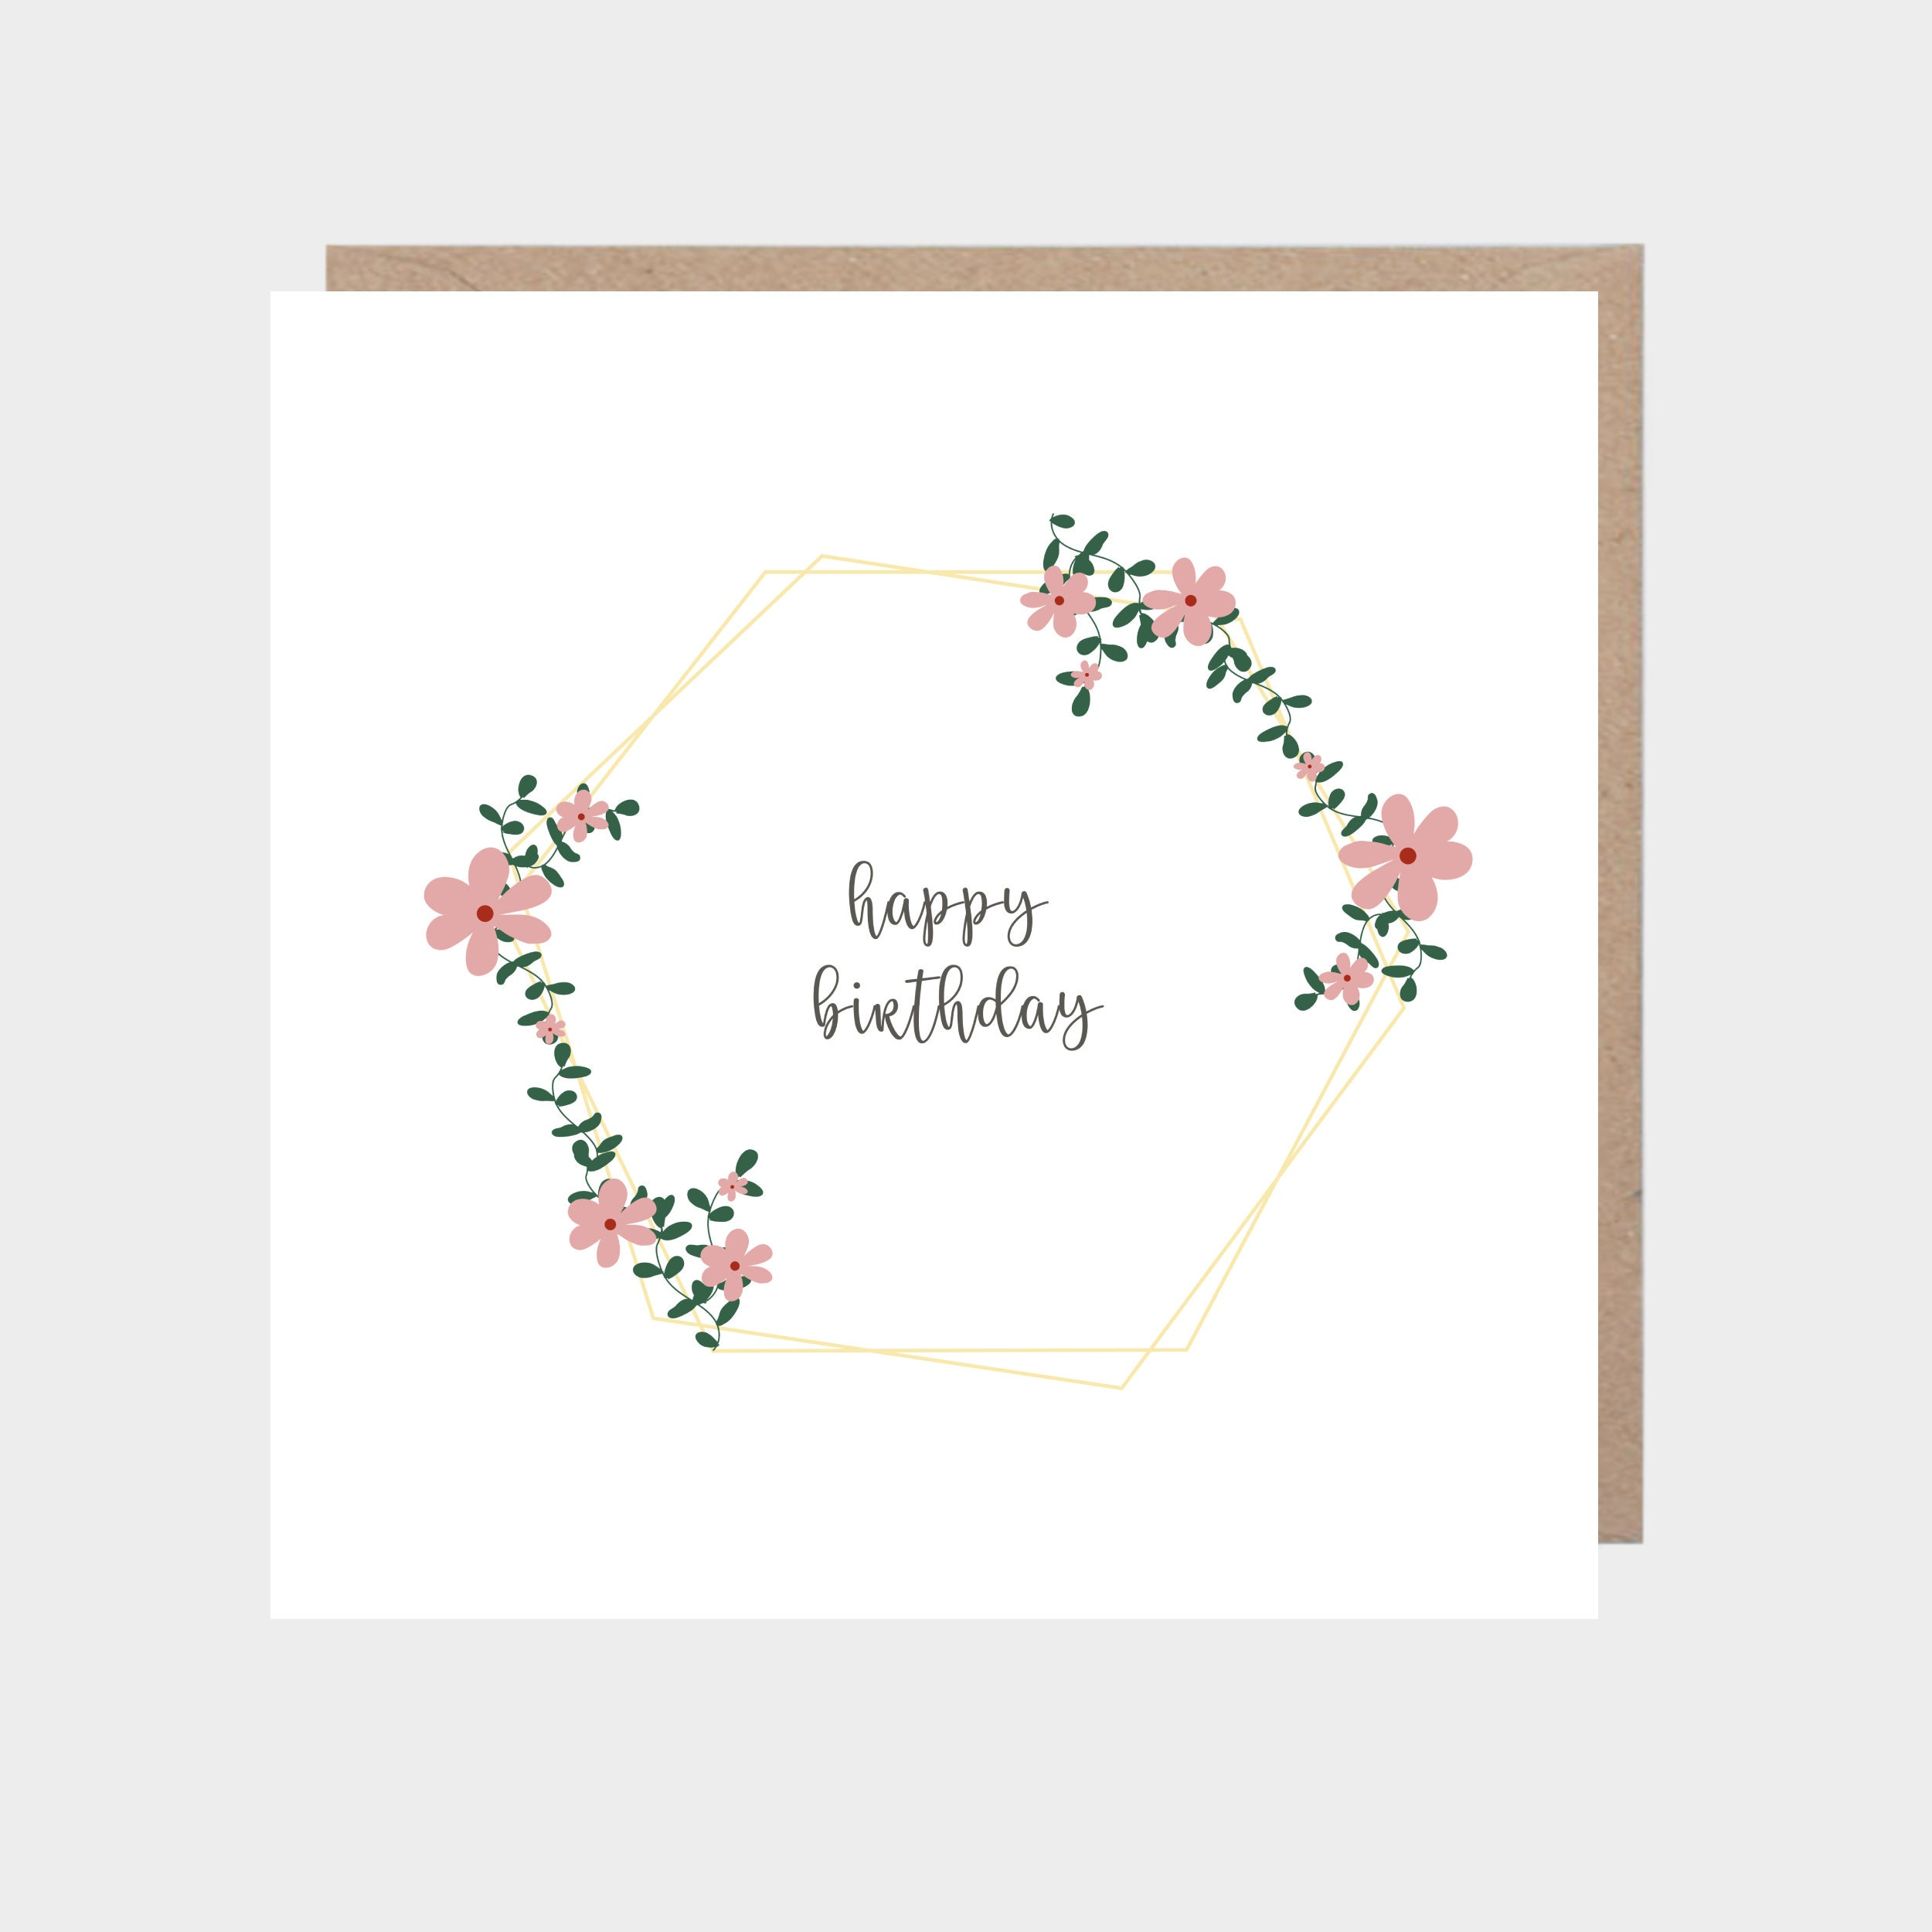 Square white card with a geometric floral design, with a brown kraft envelope